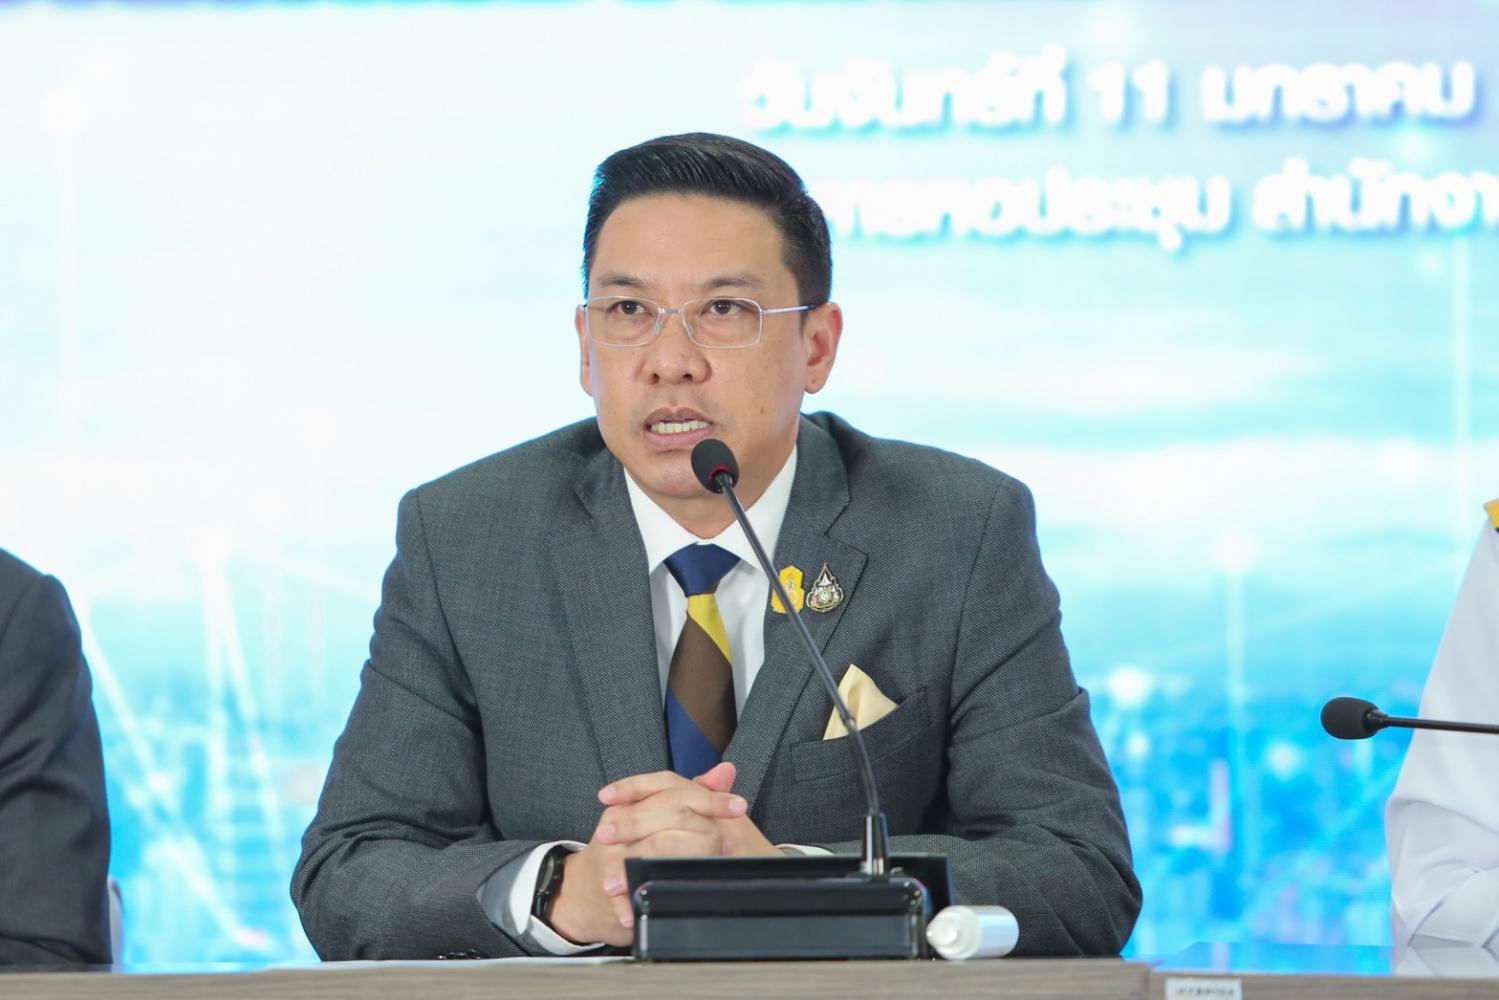 Mr Buddhipongse wanted NT to support the Thailand 4.0 scheme, provide telecom infrastructure for others with a neutral stance, and spin off its retail business for effective operation.